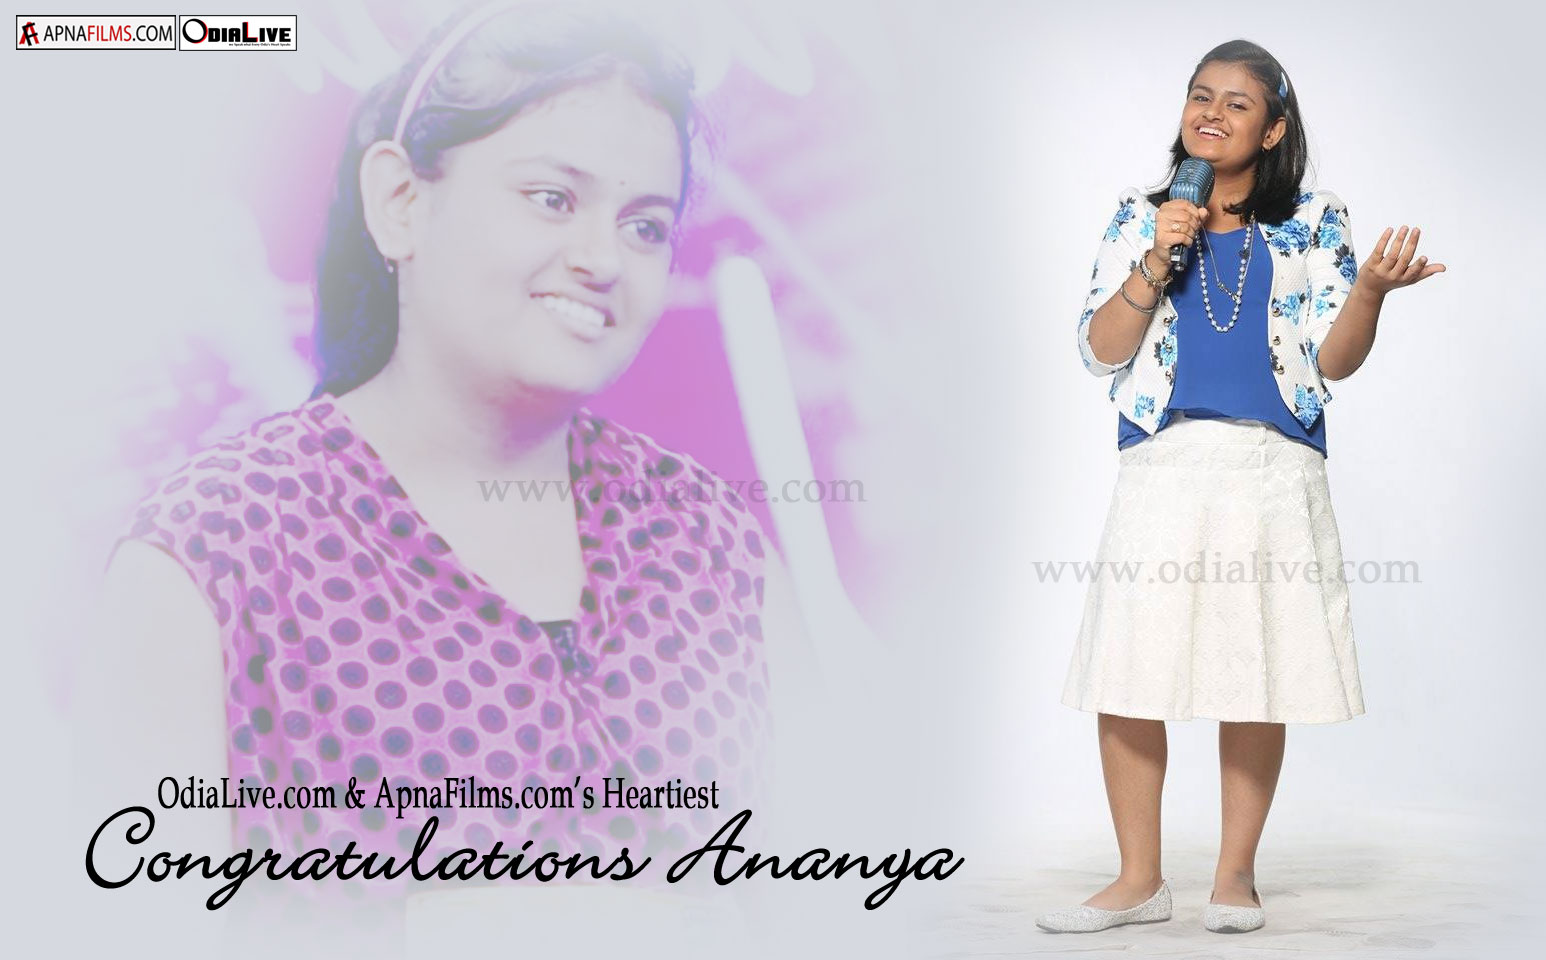 Top 6 Performance by Ananya Nanda 1